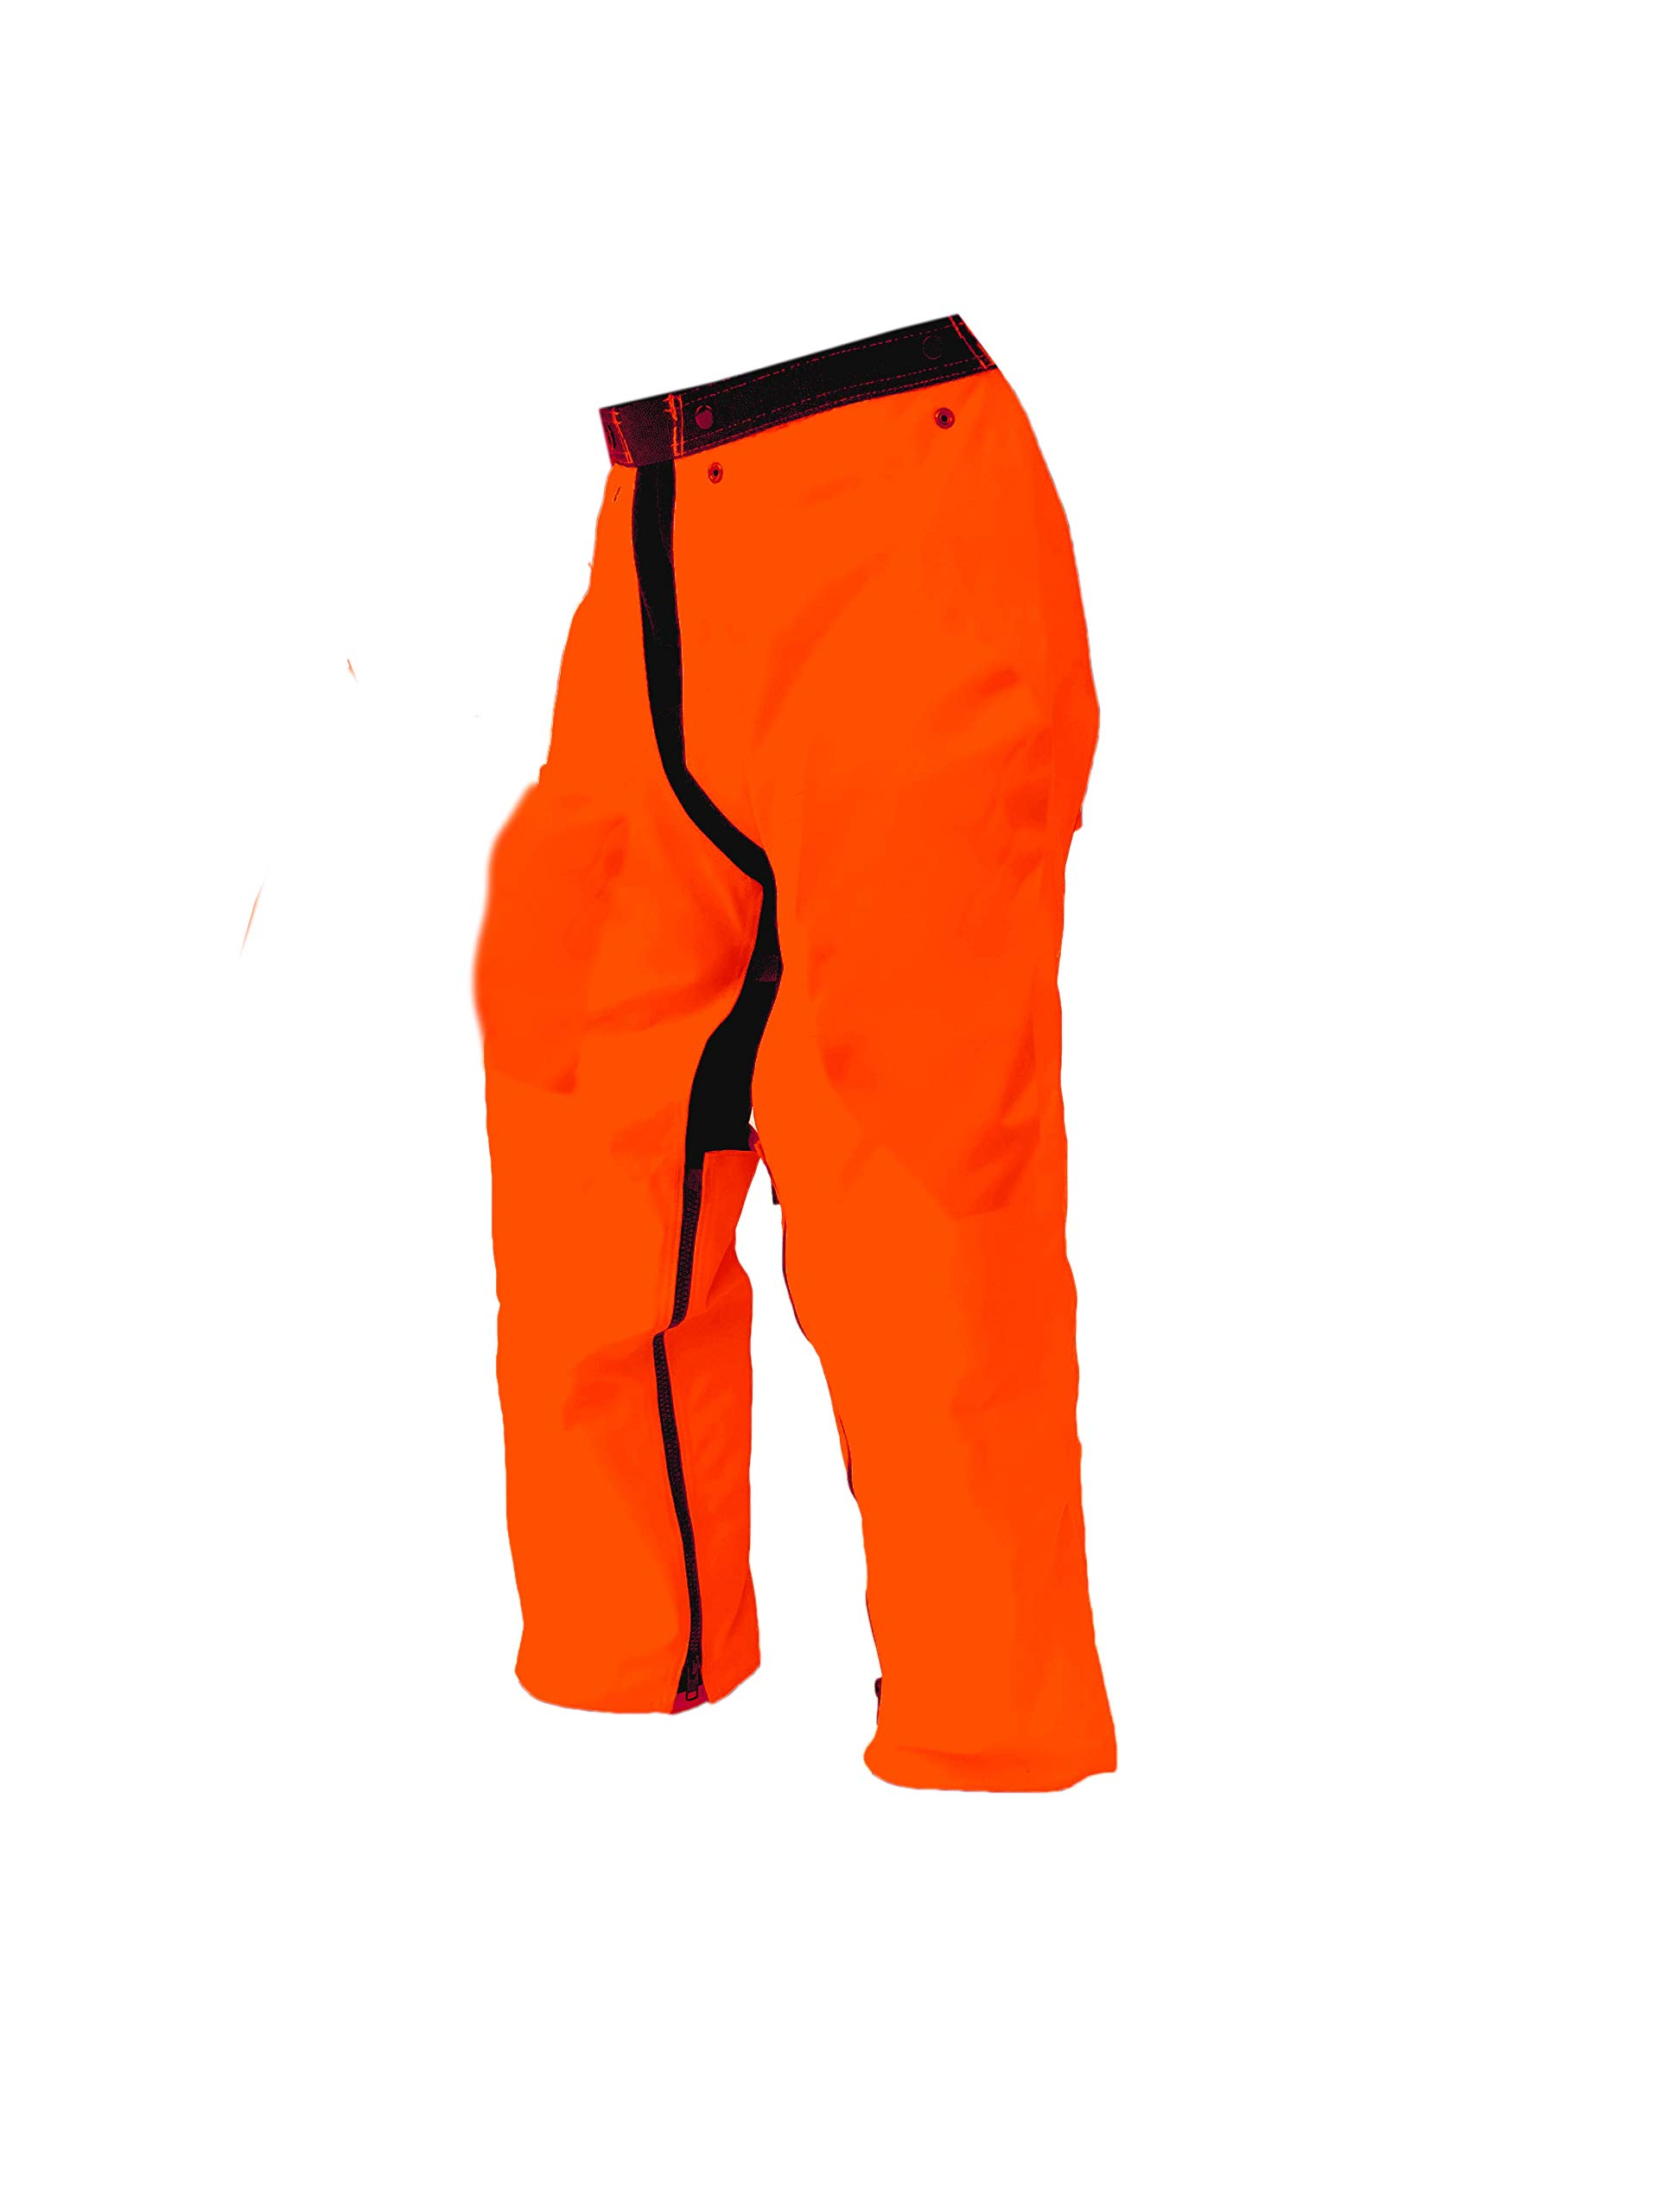 Forester Chainsaw Safety Chaps - Full Wrap Zipper - Orange (Regular (37'') Fits Most 5'4'' to 6' Tall)